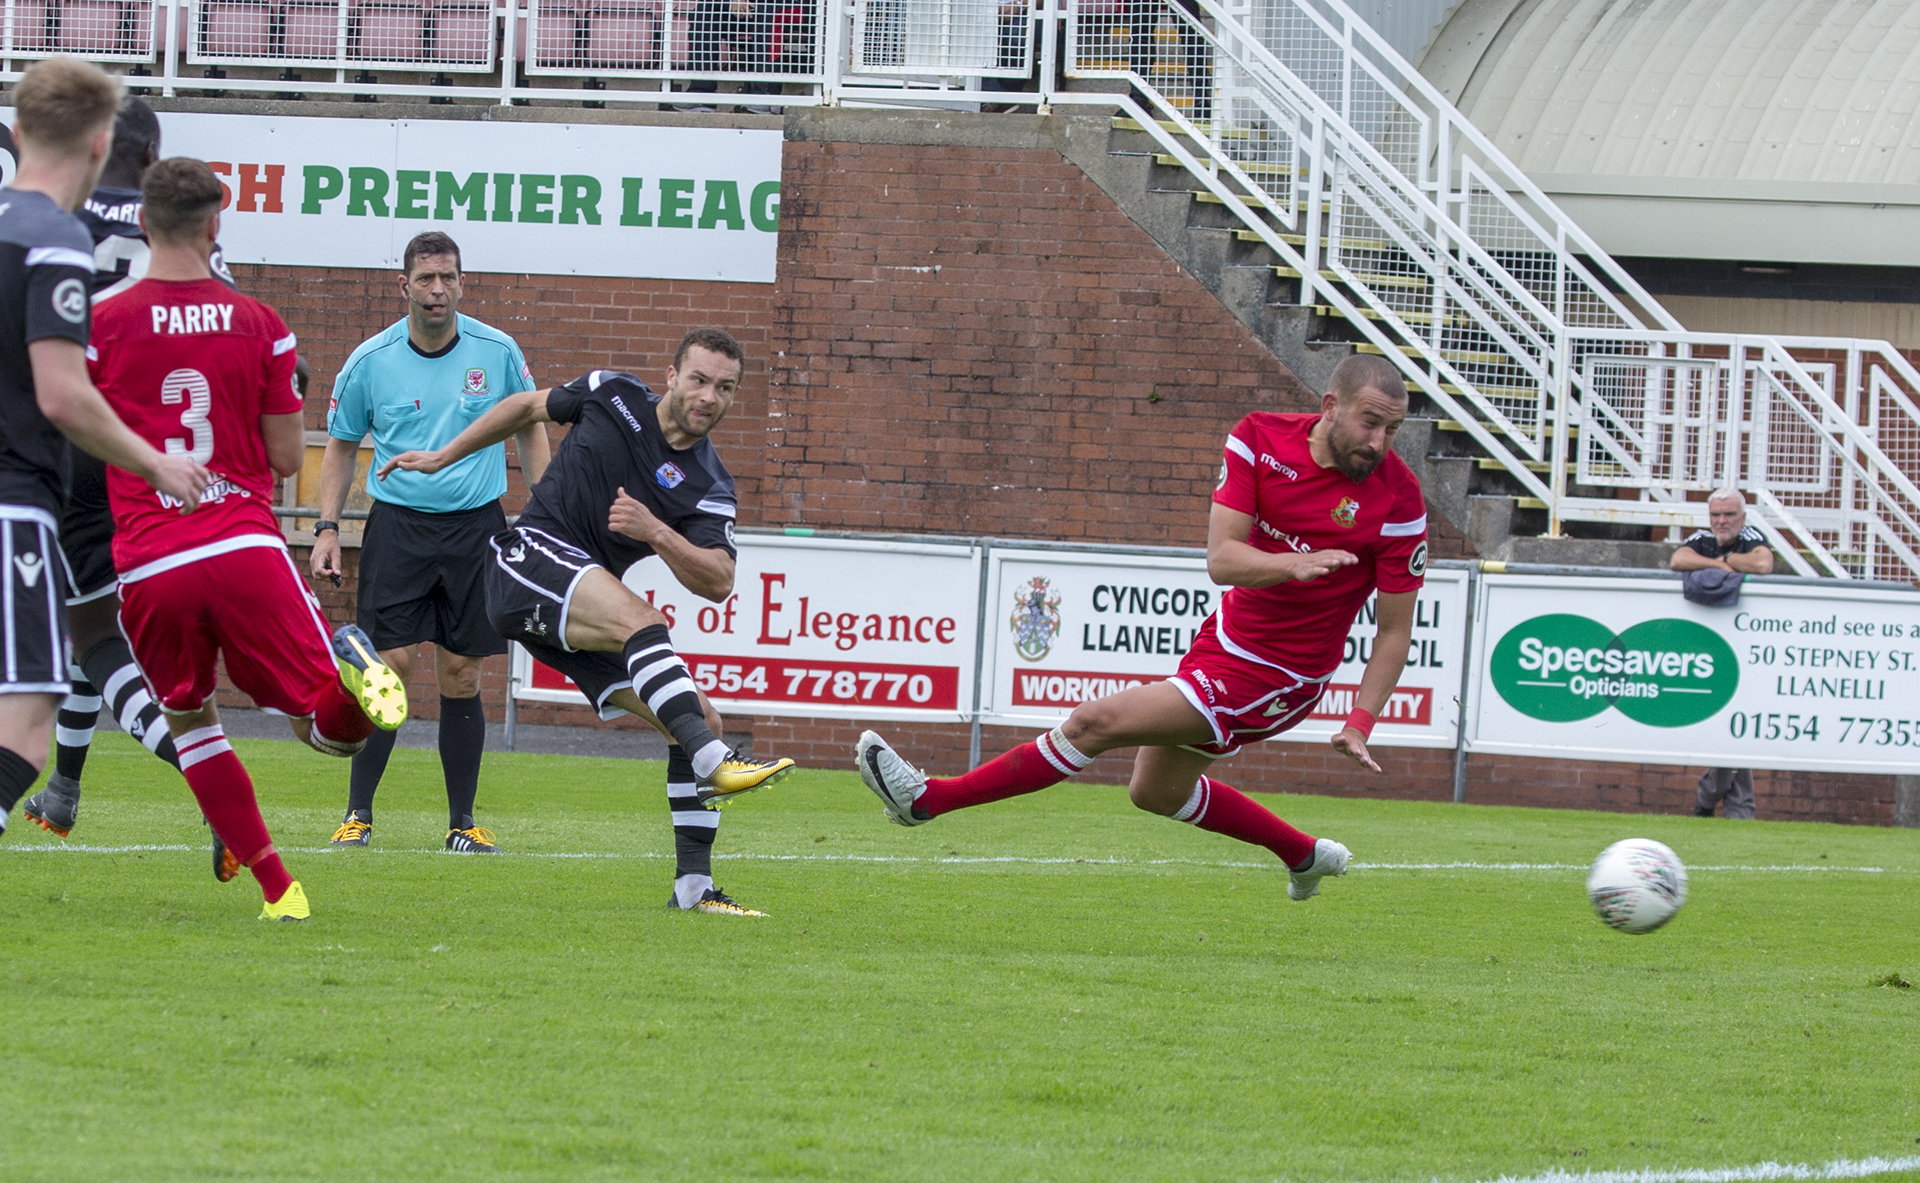 Ryan Wignall gives The Nomads a four goal advantage in the second half © NCM Media